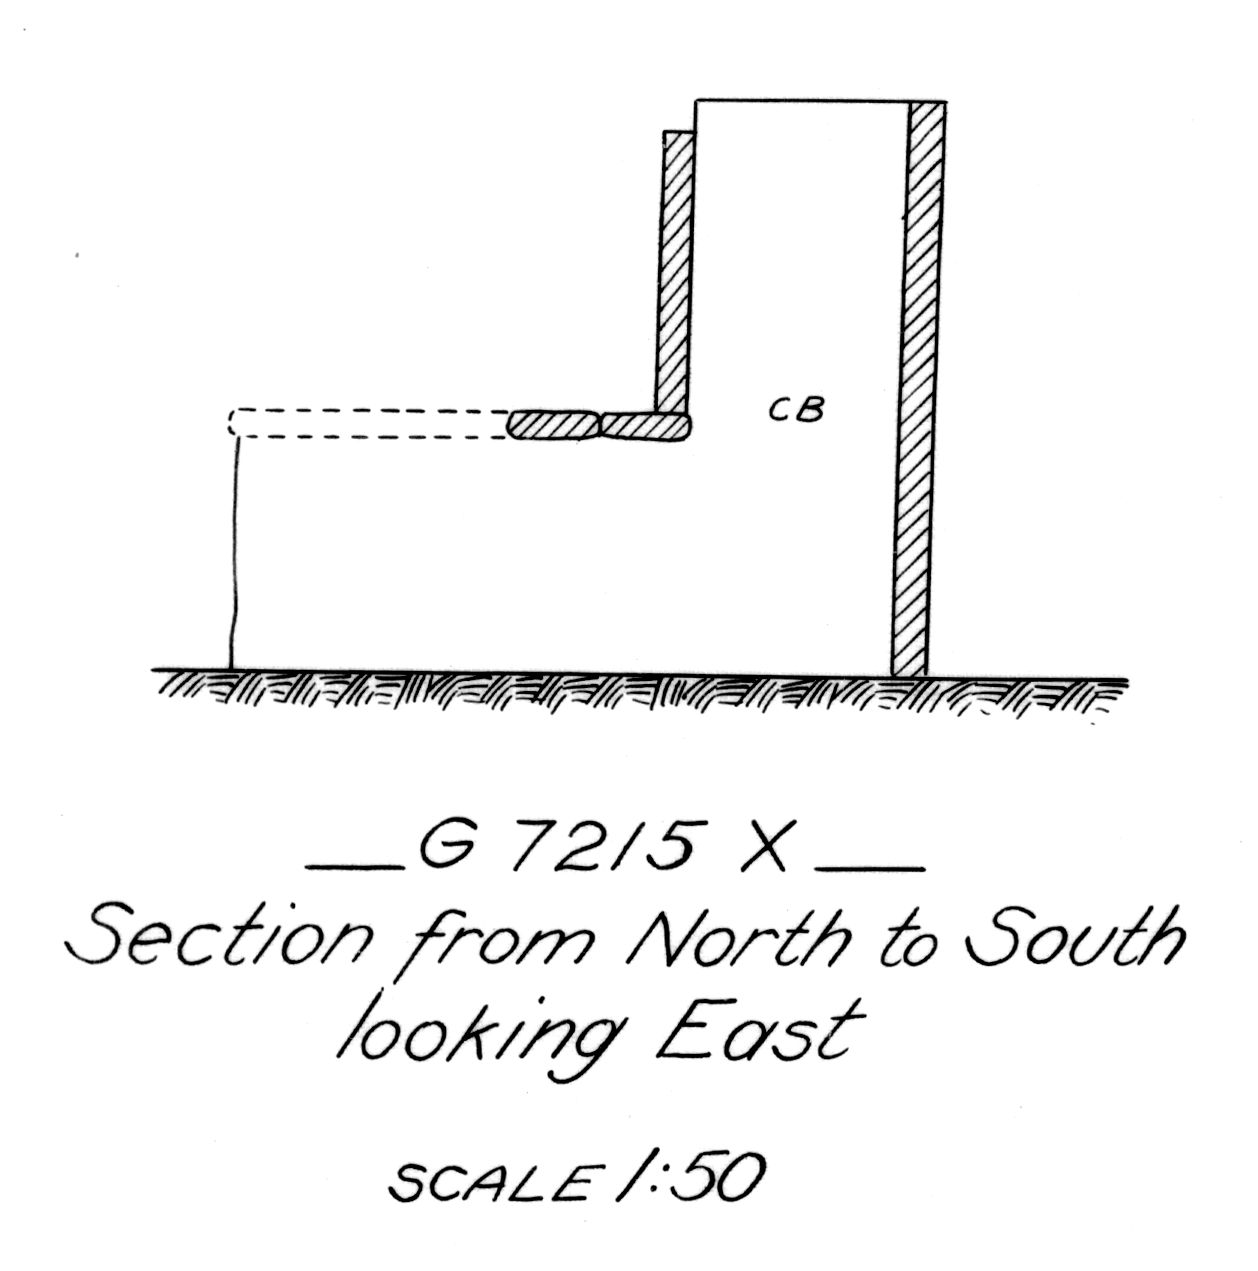 Maps and plans: G 7215, Shaft X